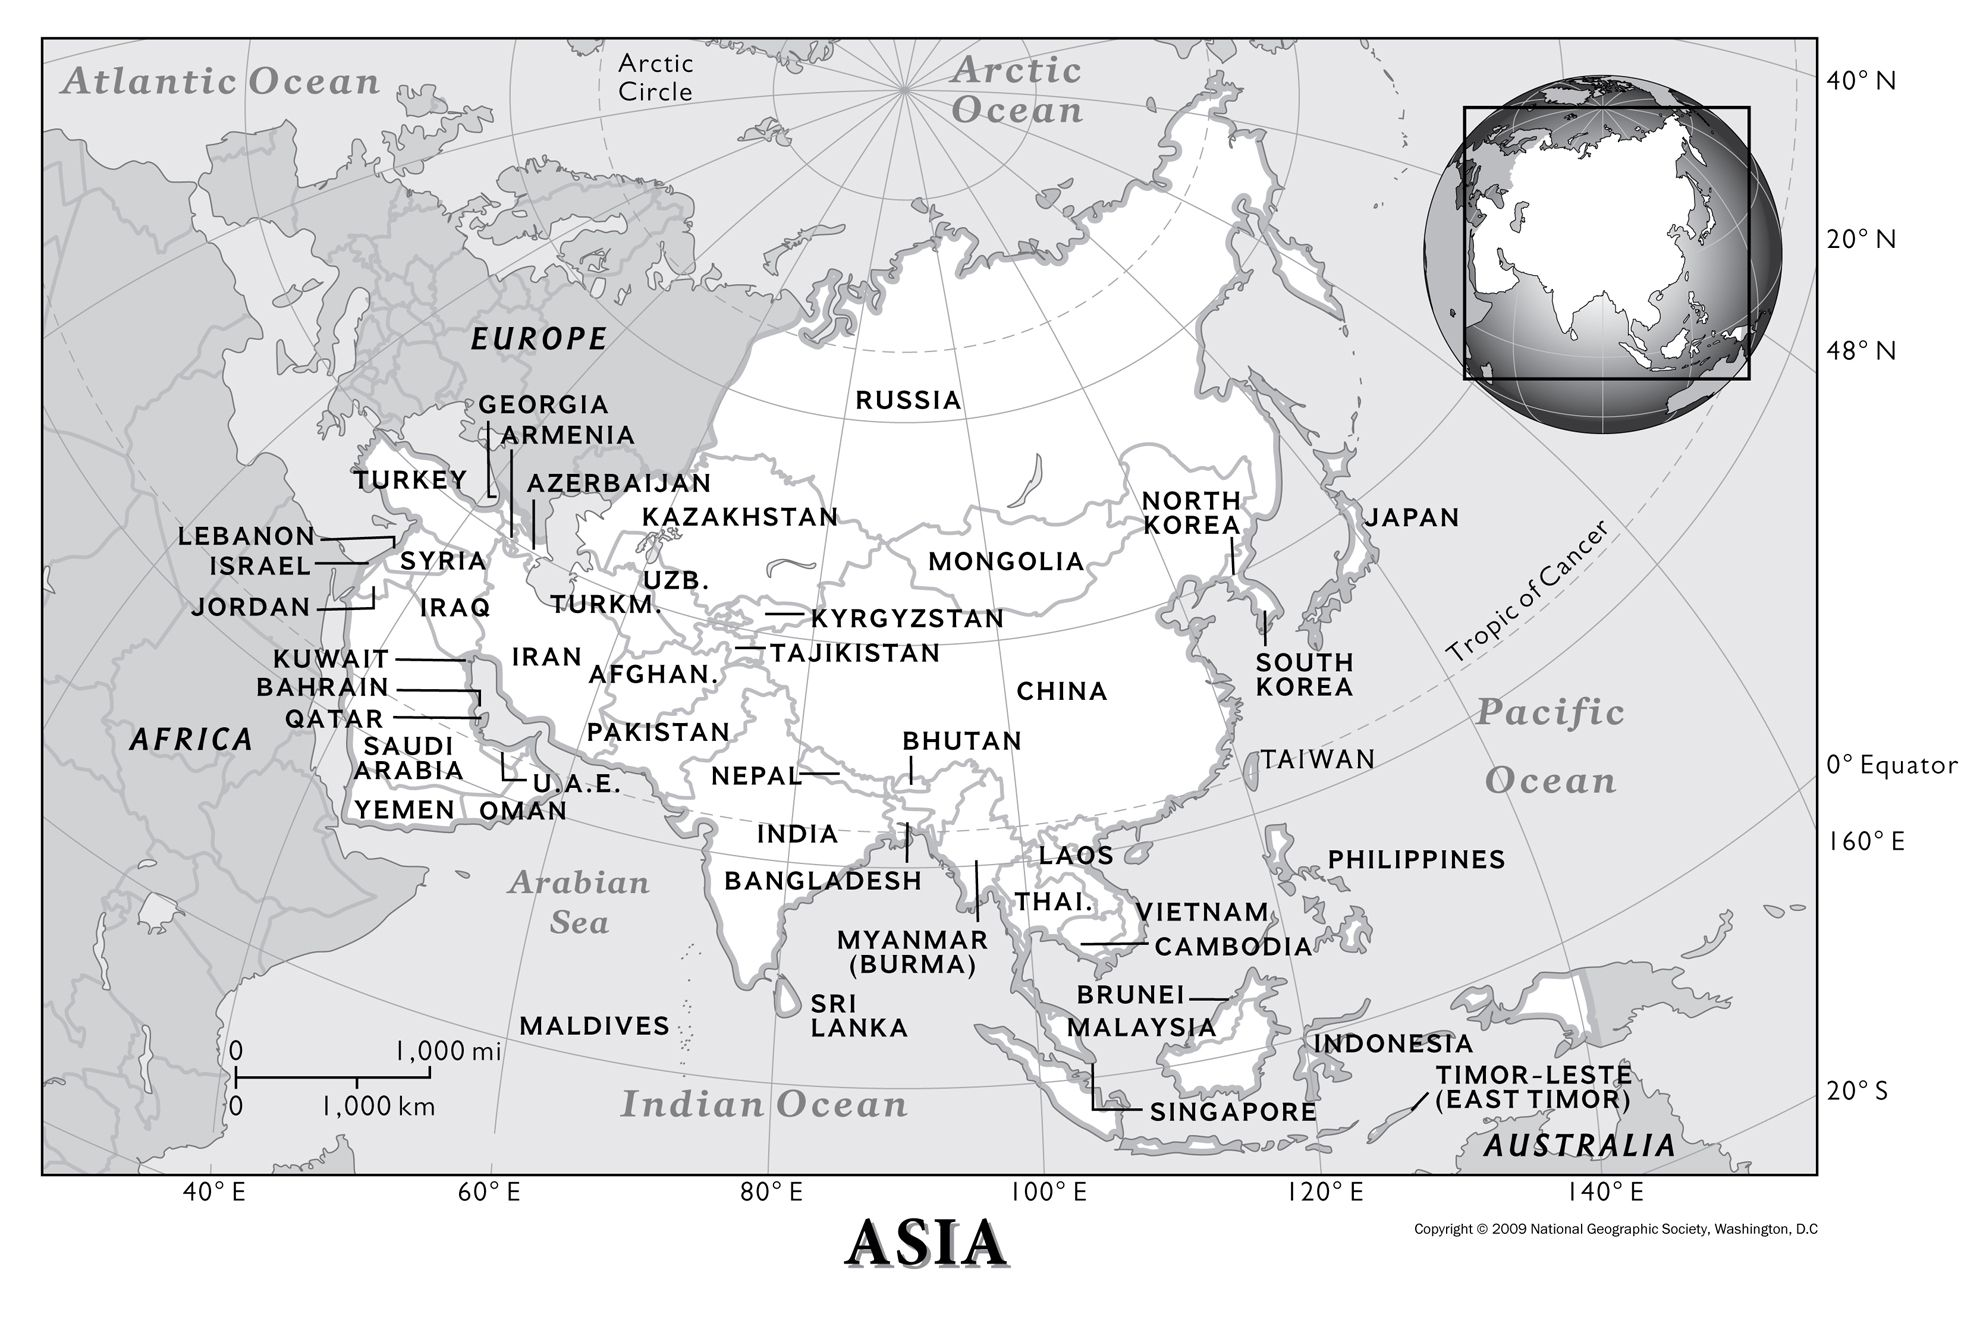 an overview of the russian geography and its effect on society We investigate long-run effects of world war ii on socio-economic status and   given the scale of the war and number of ways it fundamentally changed the   persecution and resulted in geographic displacement of populations during   body height in centimeters (a summary measure of early-life health.